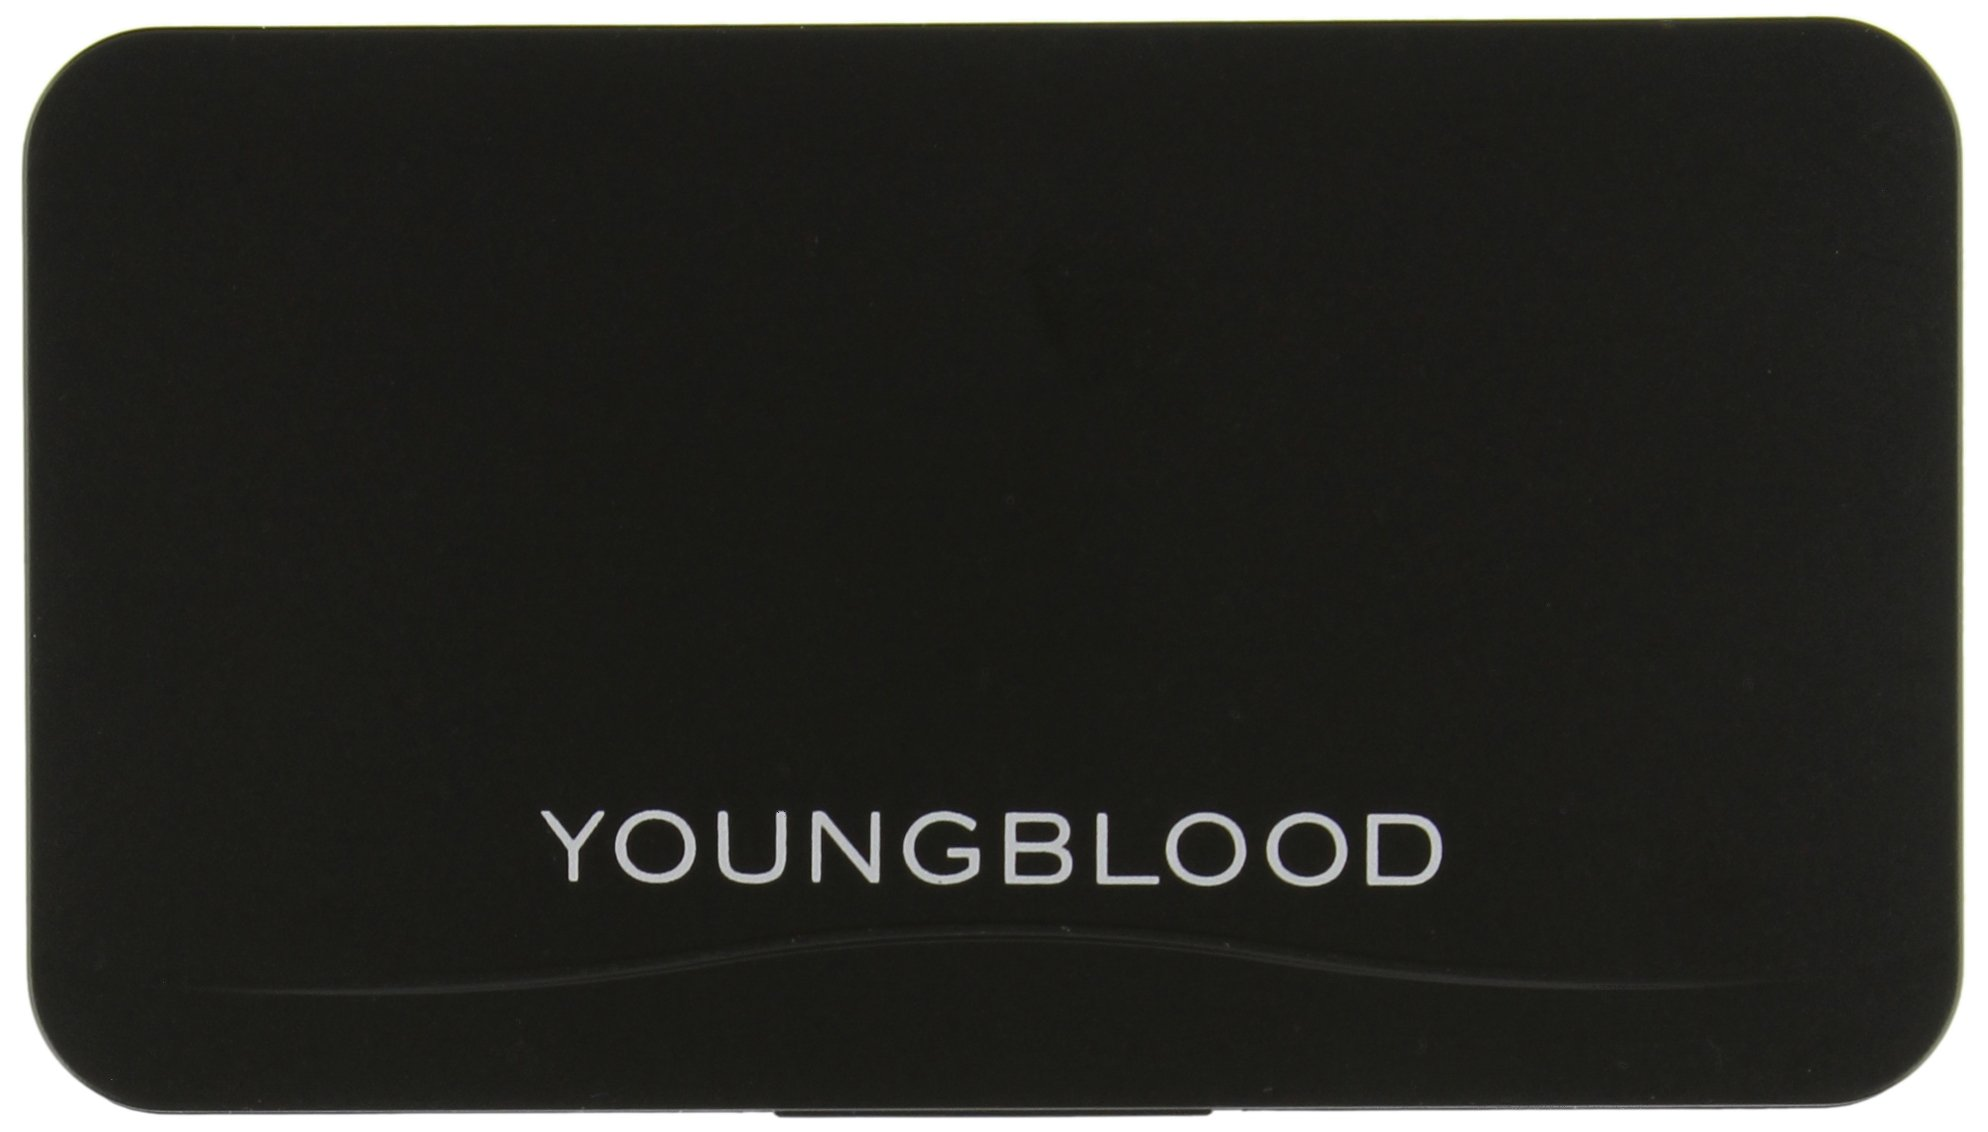 Youngblood Brow Artiste Kit, Brunette, 3 Gram by Youngblood (Image #2)